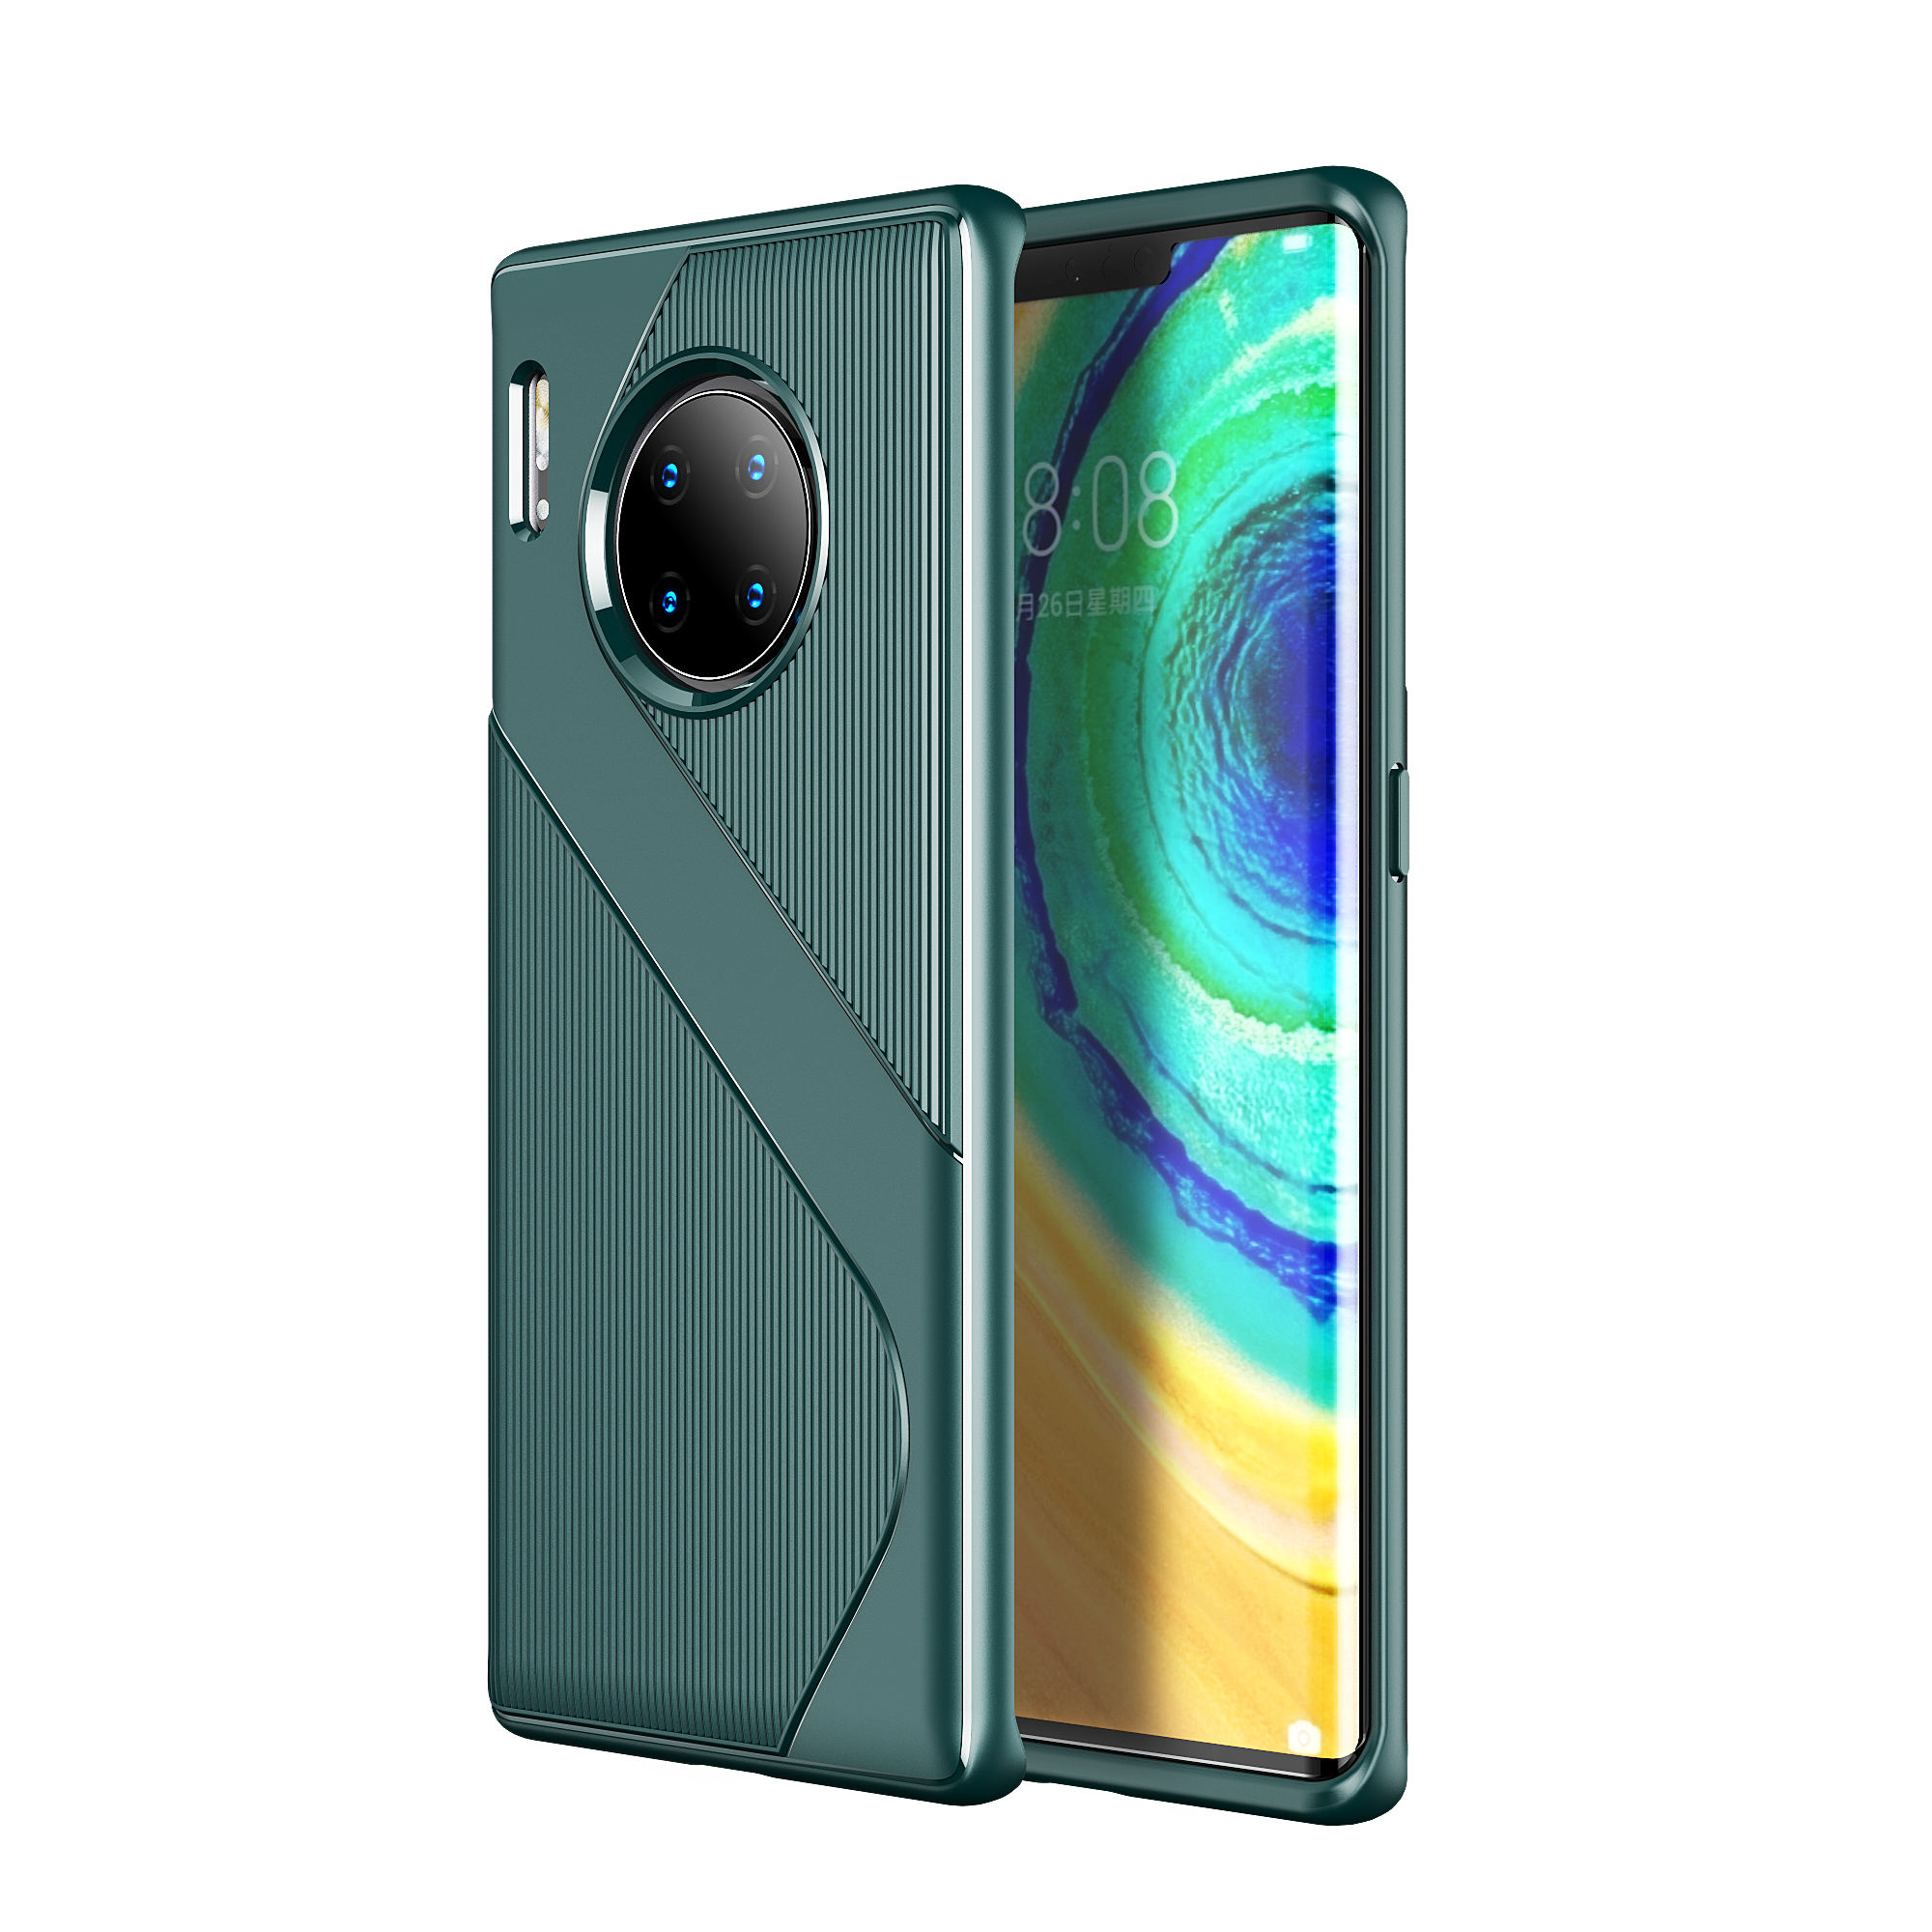 Laudtec Accessoire Telephone Portable Slim Thin Soft TPU Protective Cover Bumper Case for Huawei Mate 30 Pro